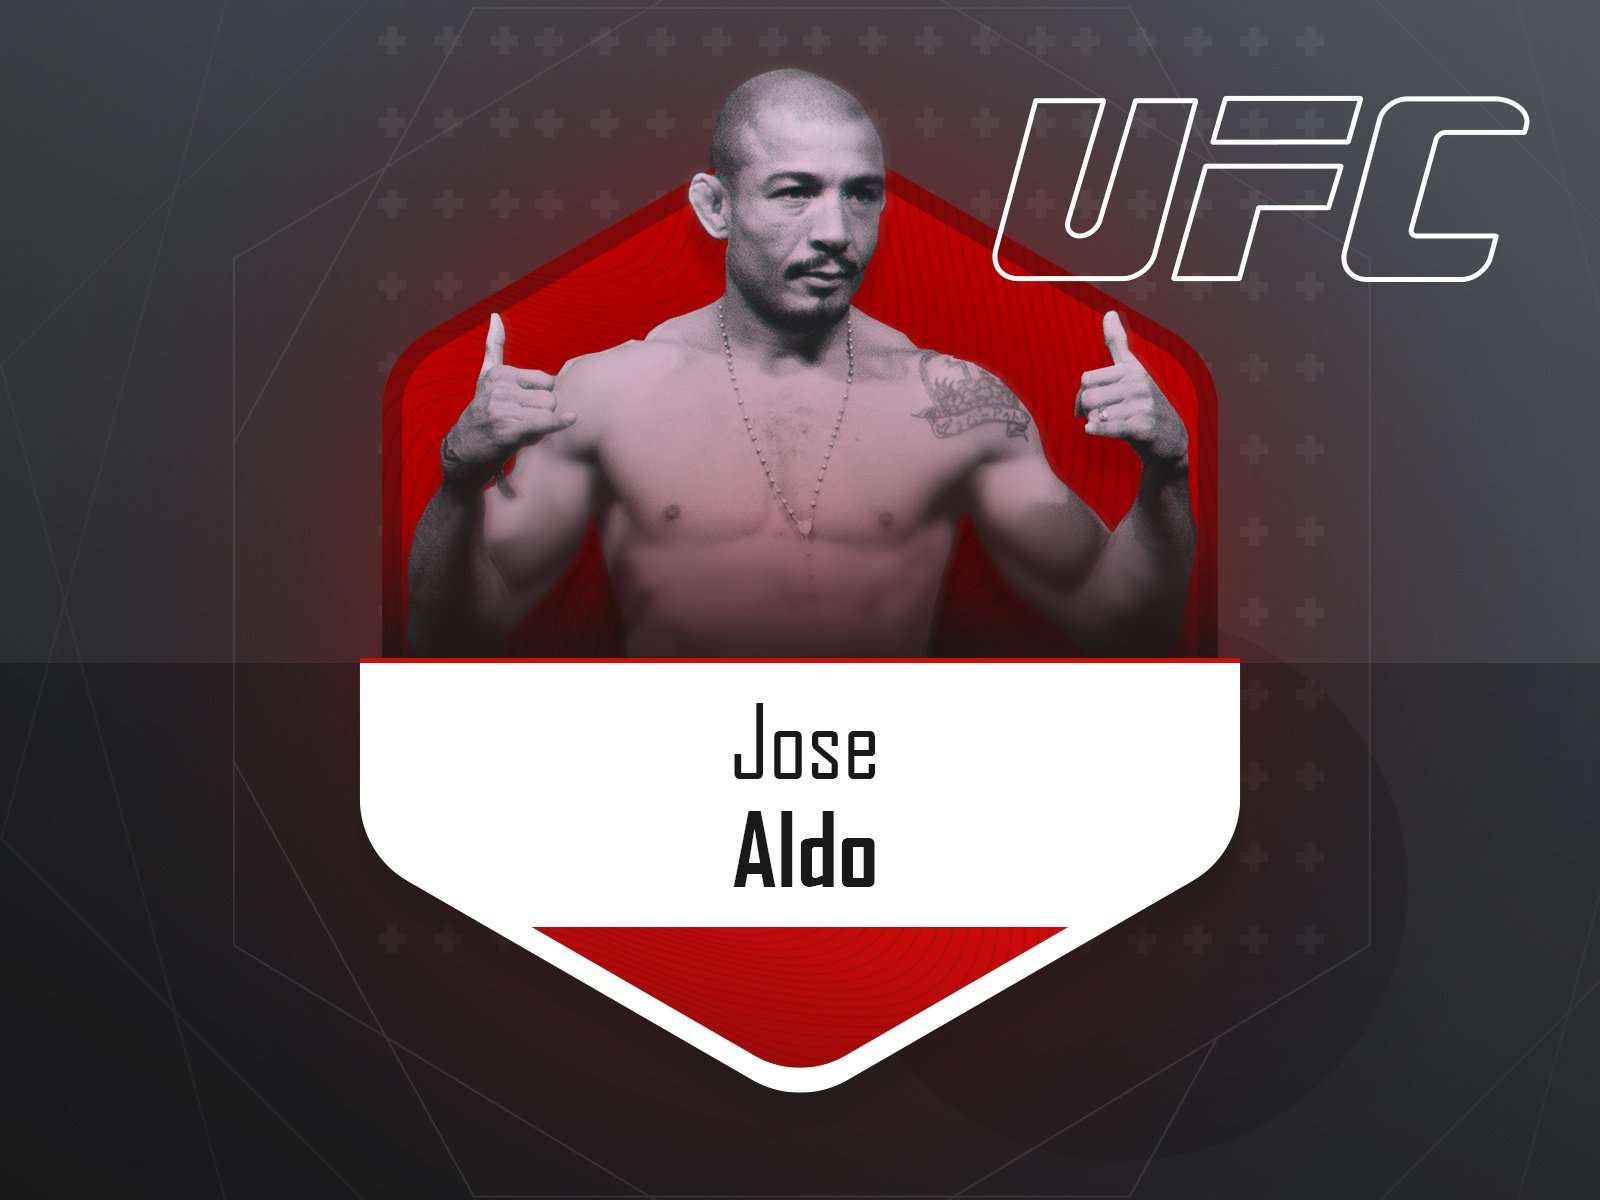 Jose Aldo - UFC fighter